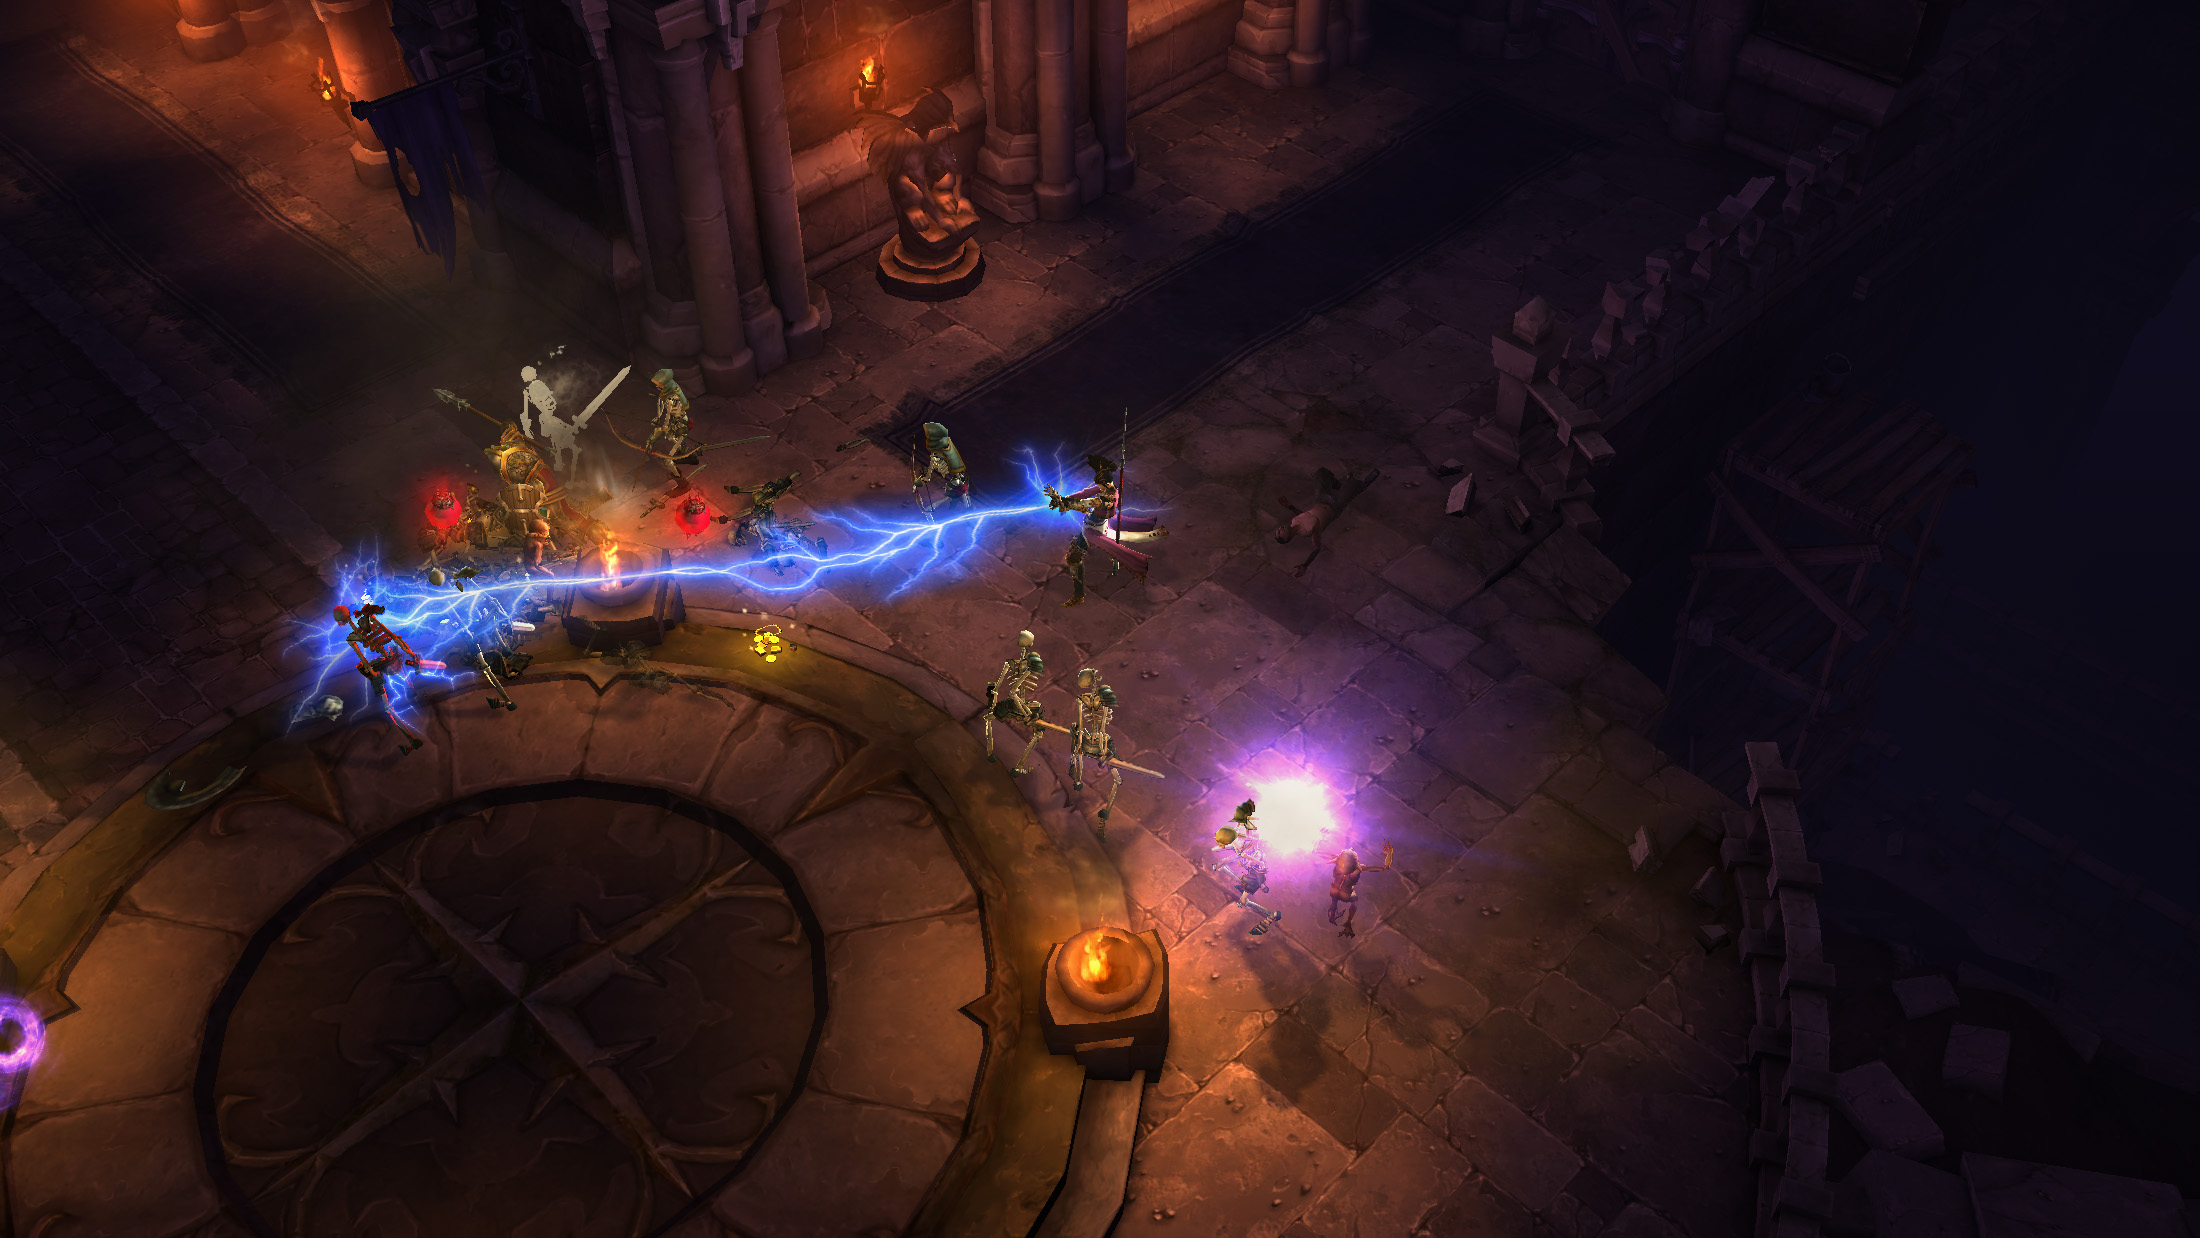 an overview of the game diablo A: the diablo iii necromancer is a reimagining of the classic diablo ii class while not all of the diablo ii class skills will be returning, we drew a lot of inspiration from the previous version of the necromancer and have taken the diablo iii version in a direction we hope you'll love.